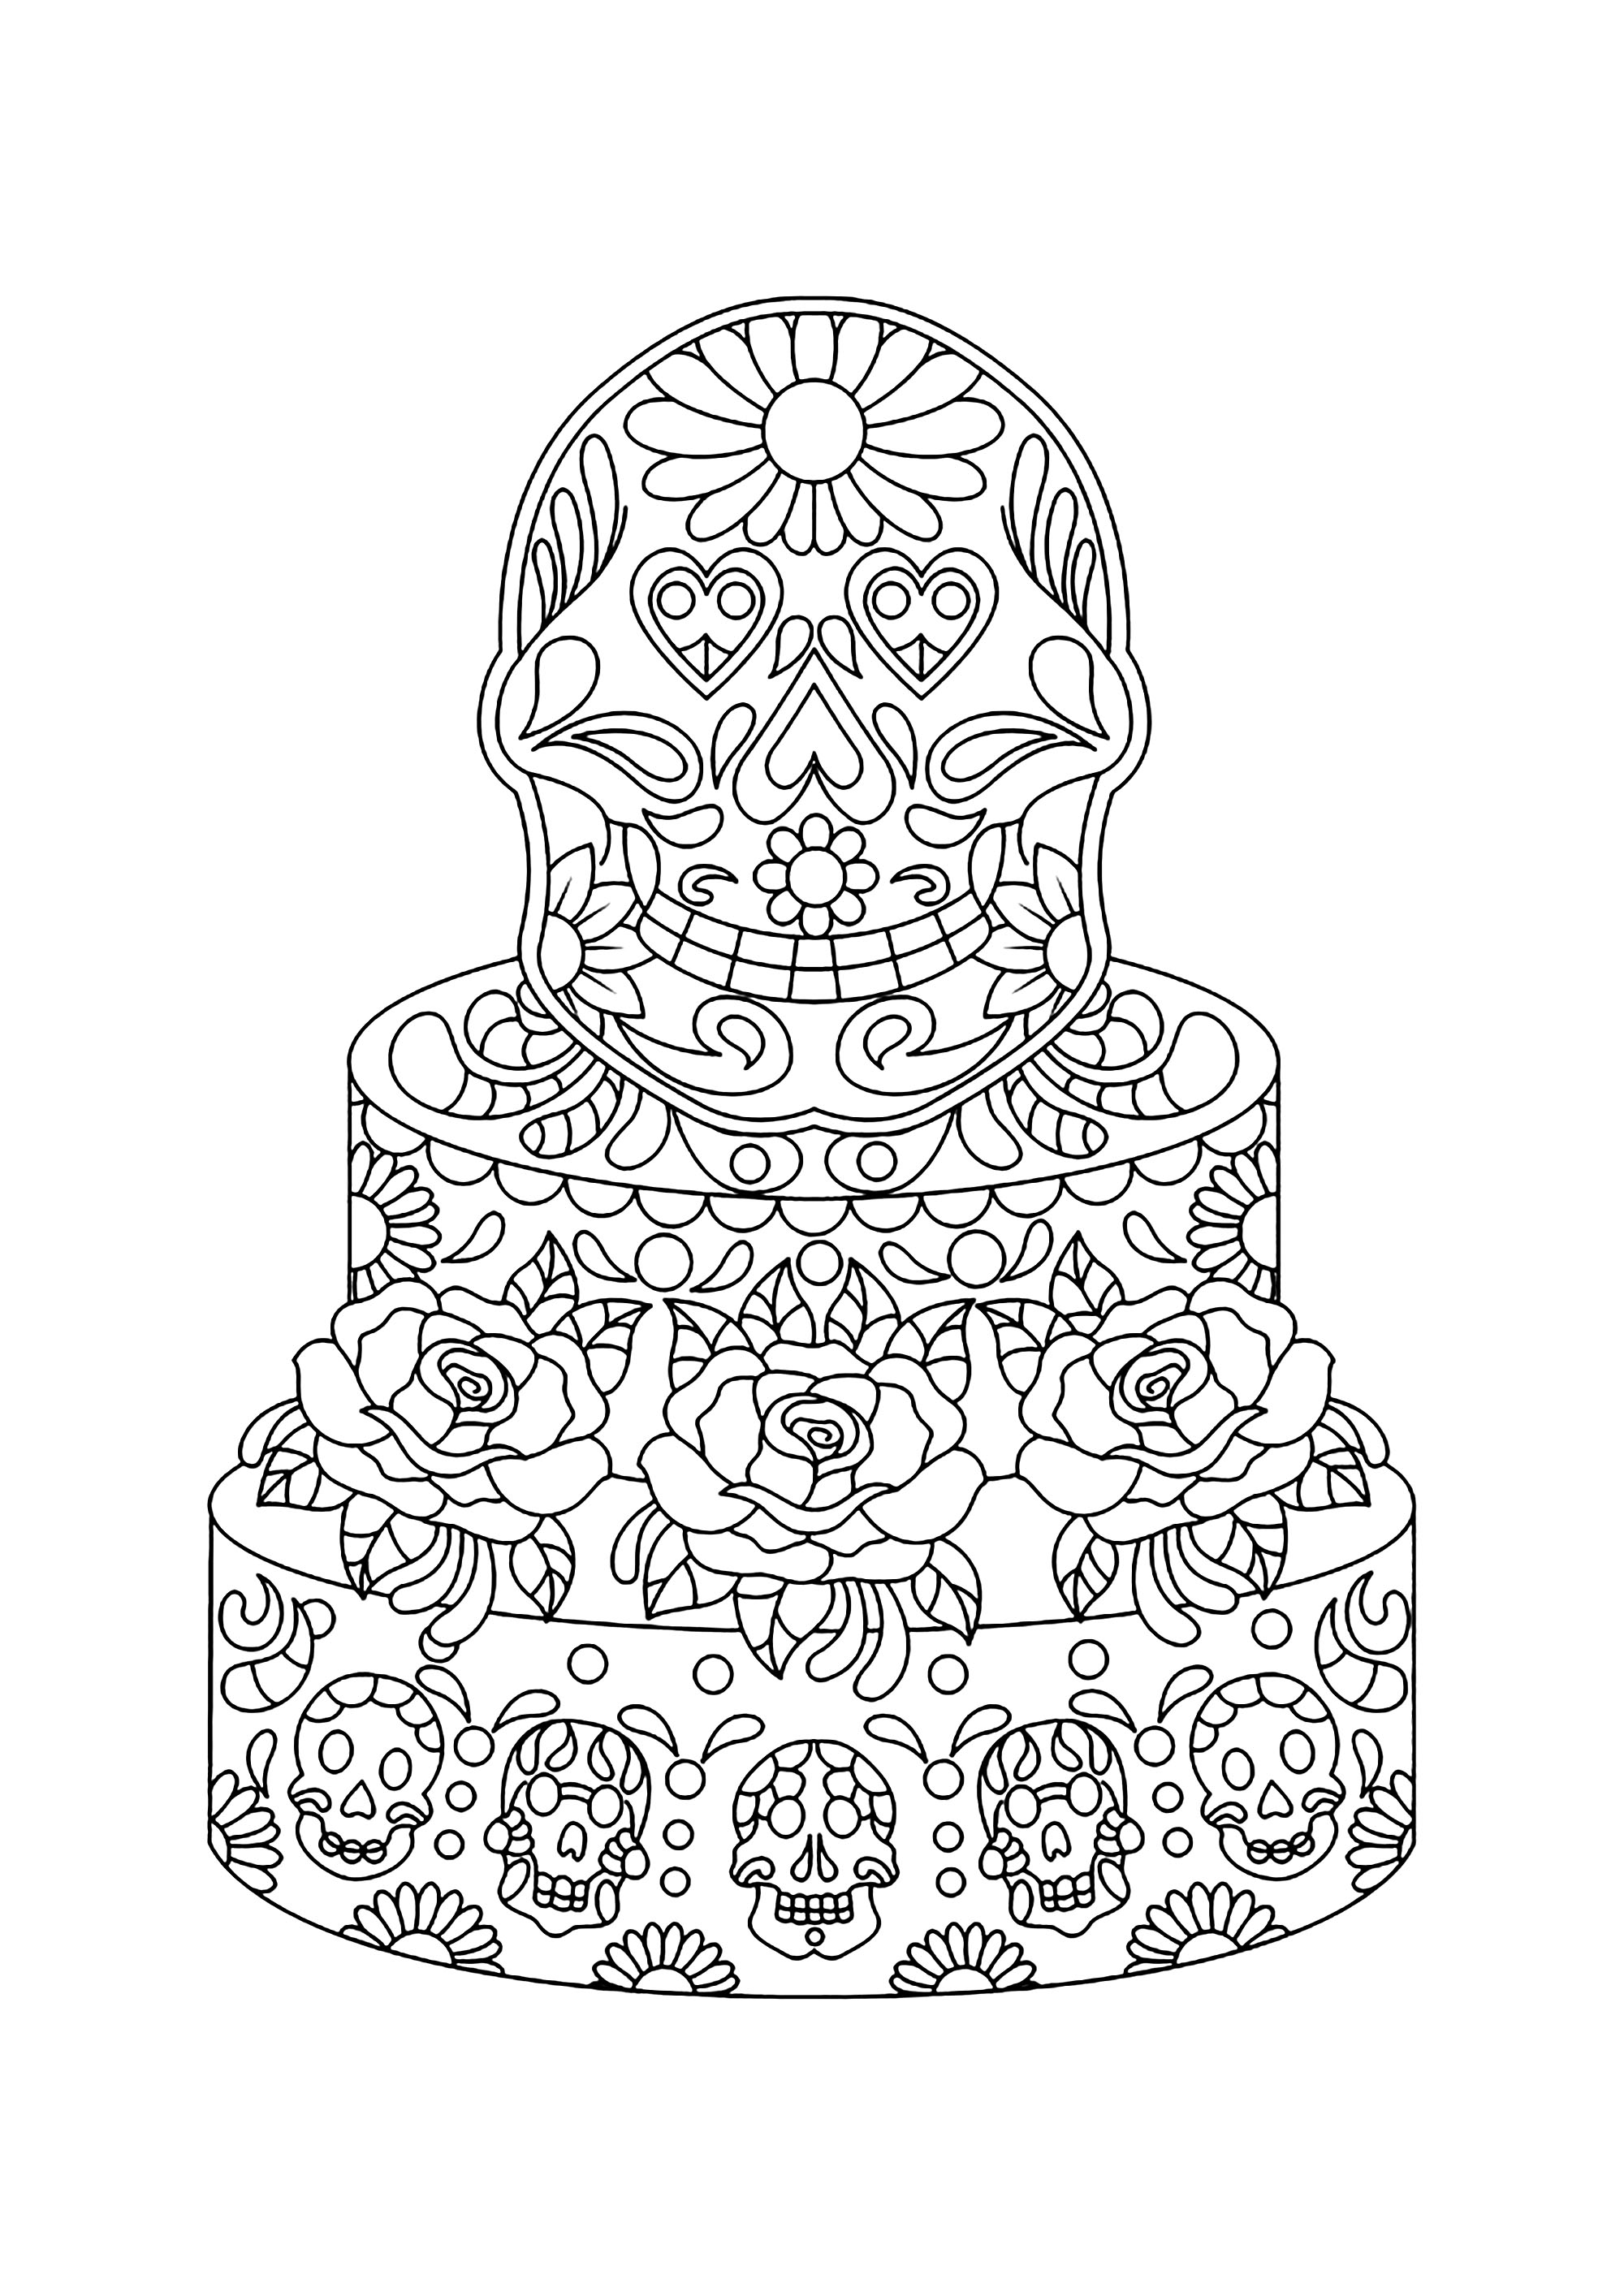 Mexican cake cupcakes adult coloring pages, coloring pages print